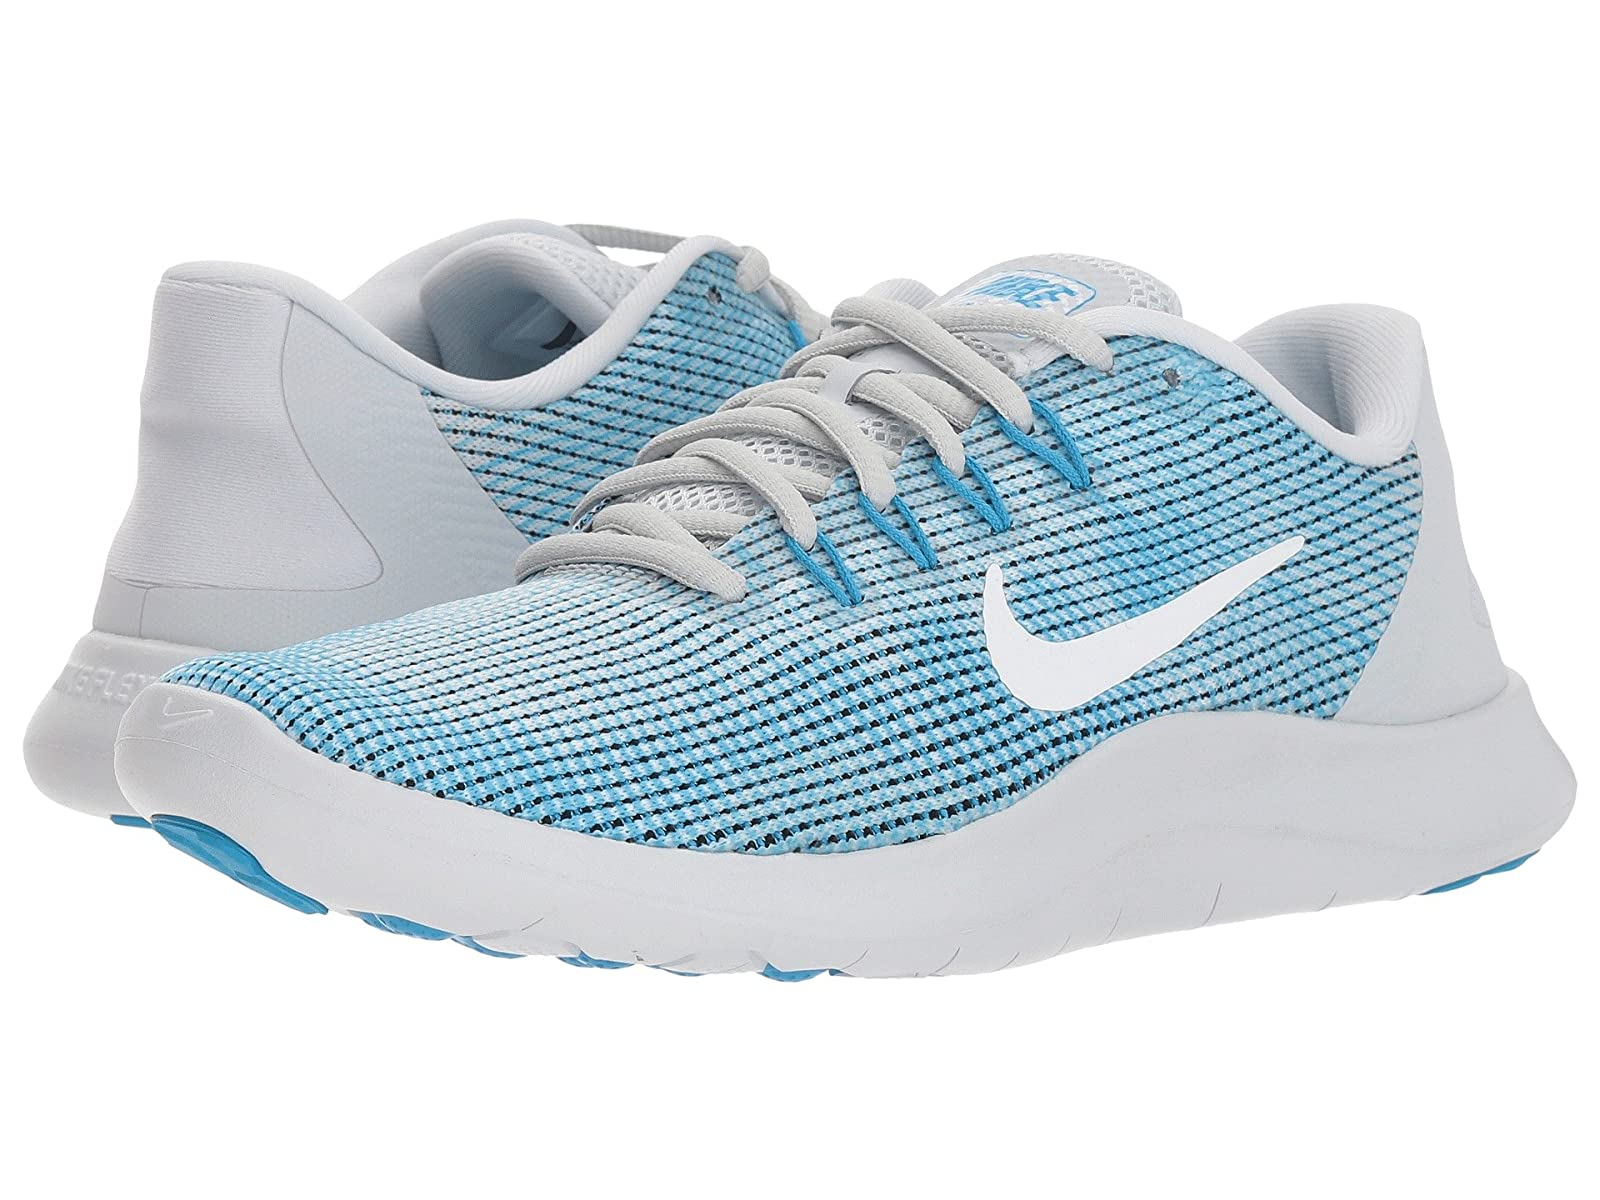 Nike Flex RN 2018Atmospheric grades have affordable shoes